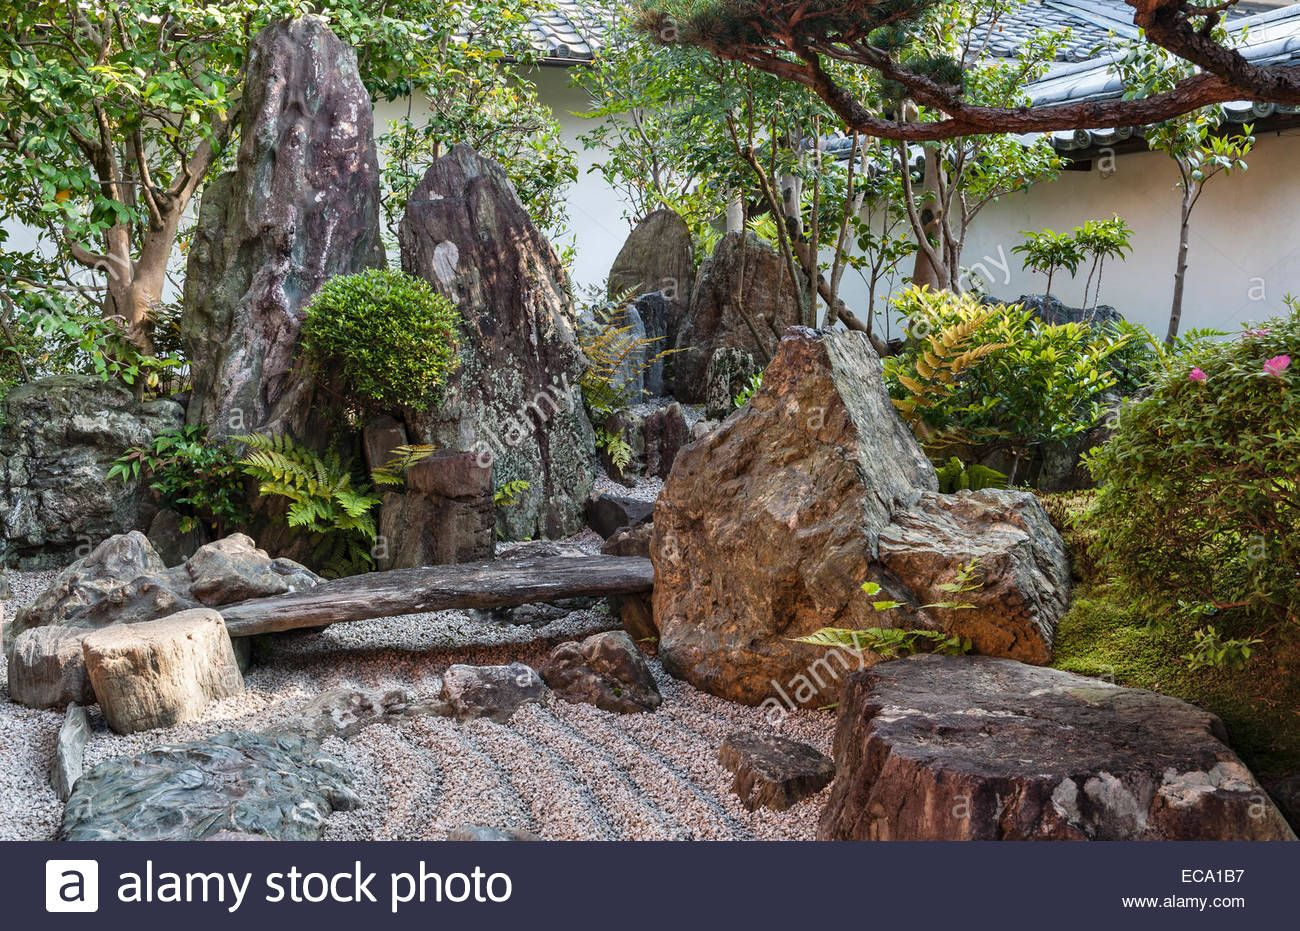 Download This Stock Image Daisen In Zen Temple Daitoku Ji Kyoto Japan A Corner Of The Hojo Garden Eca1b7 From Alamy S Library Of Millions Of High Resolut